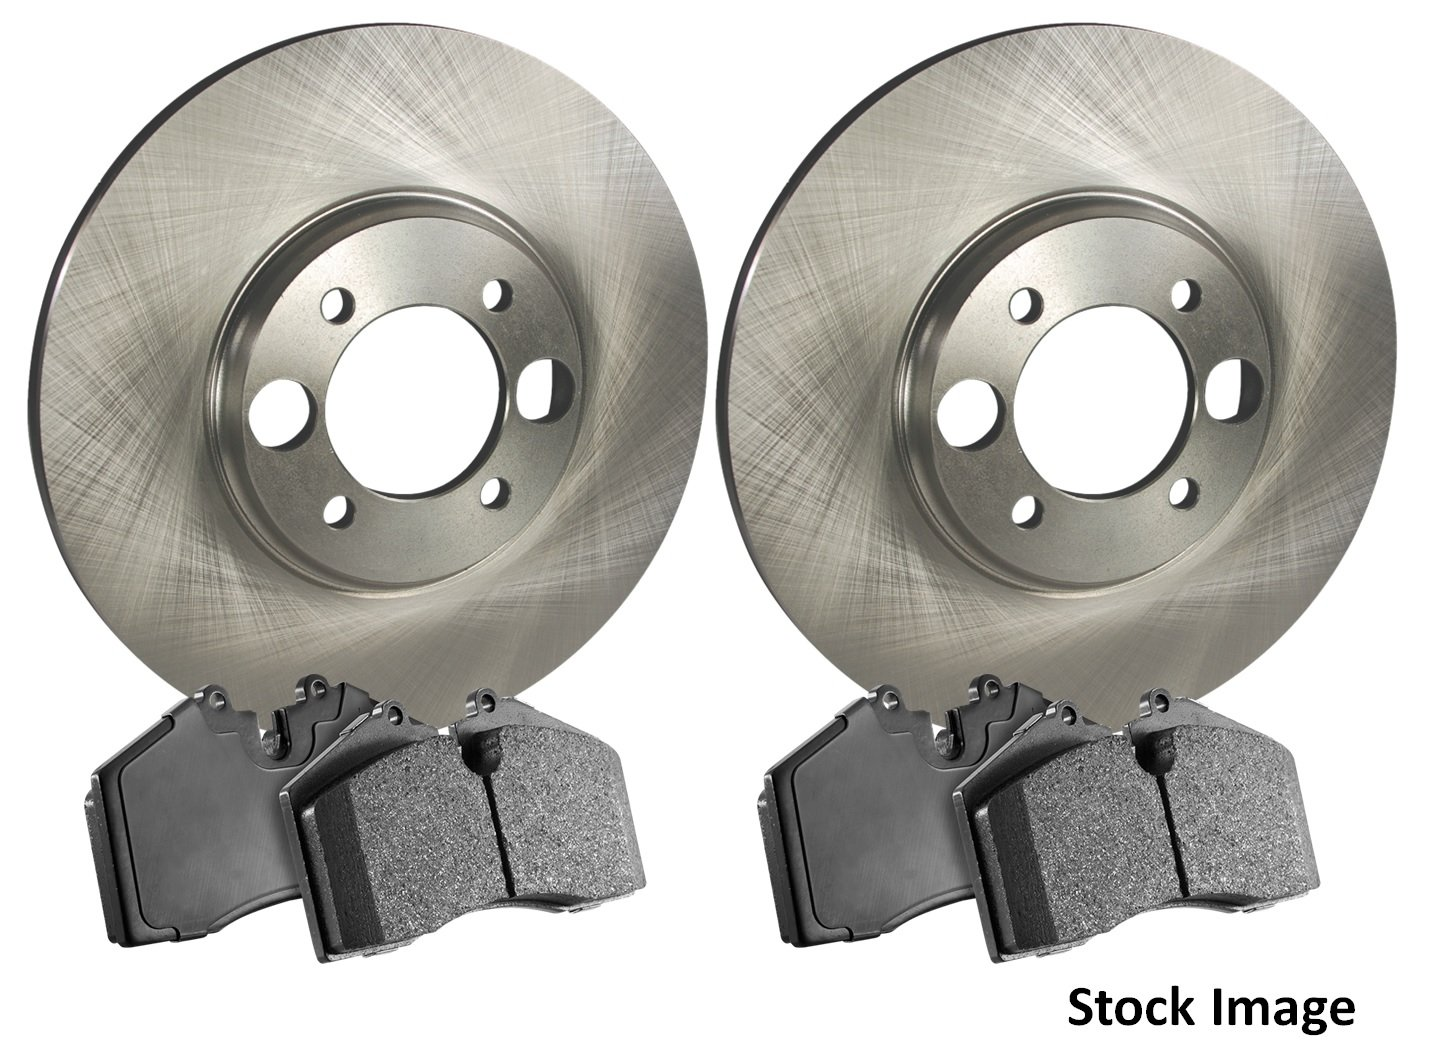 2015 For Nissan Pathfinder Front Disc Brake Rotors and Ceramic Brake Pads Proforce